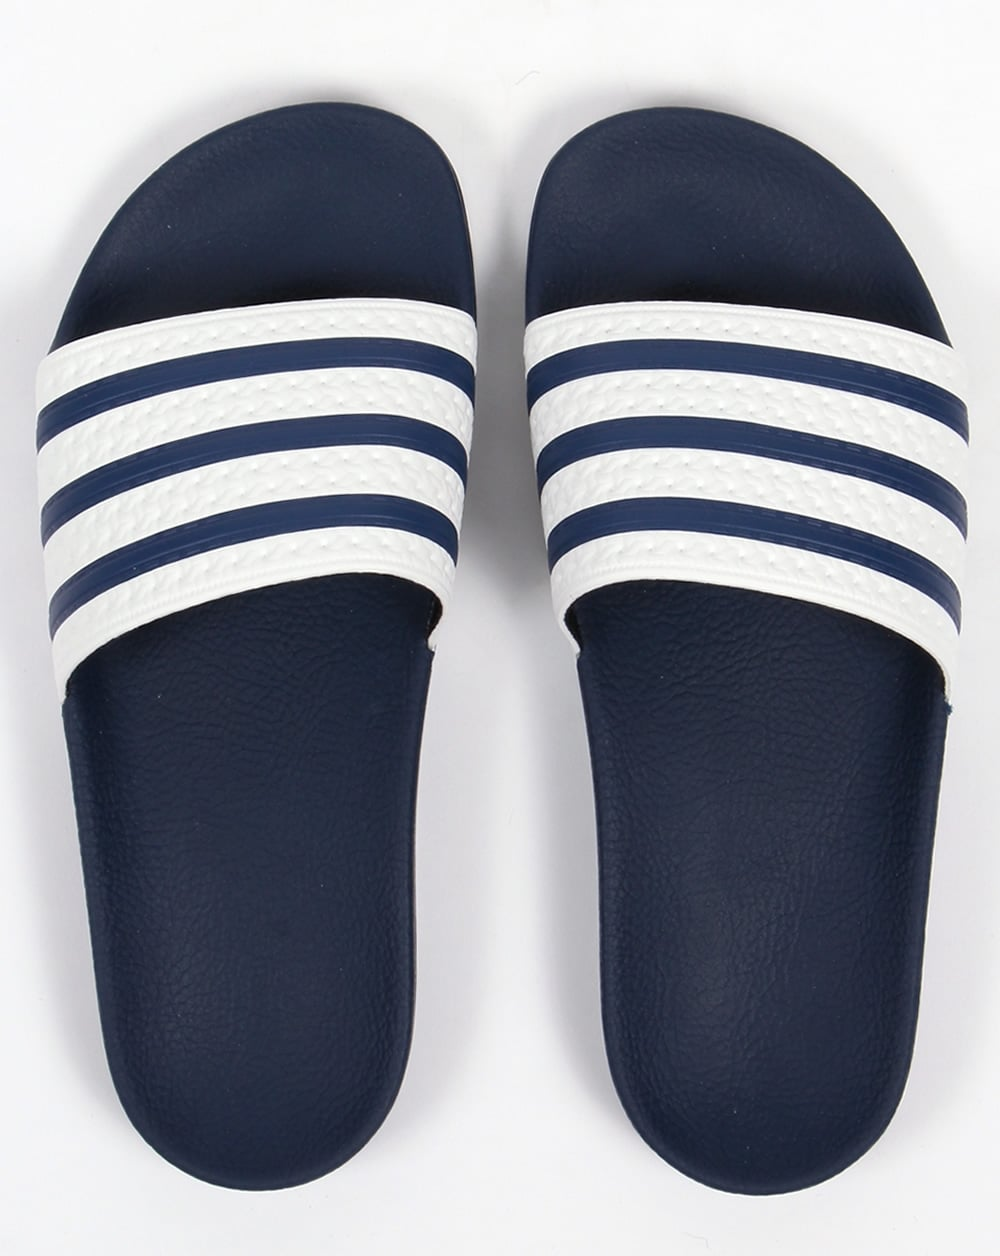 the latest b60ac 860b7 Adidas Adilette Sliders WhiteNavy